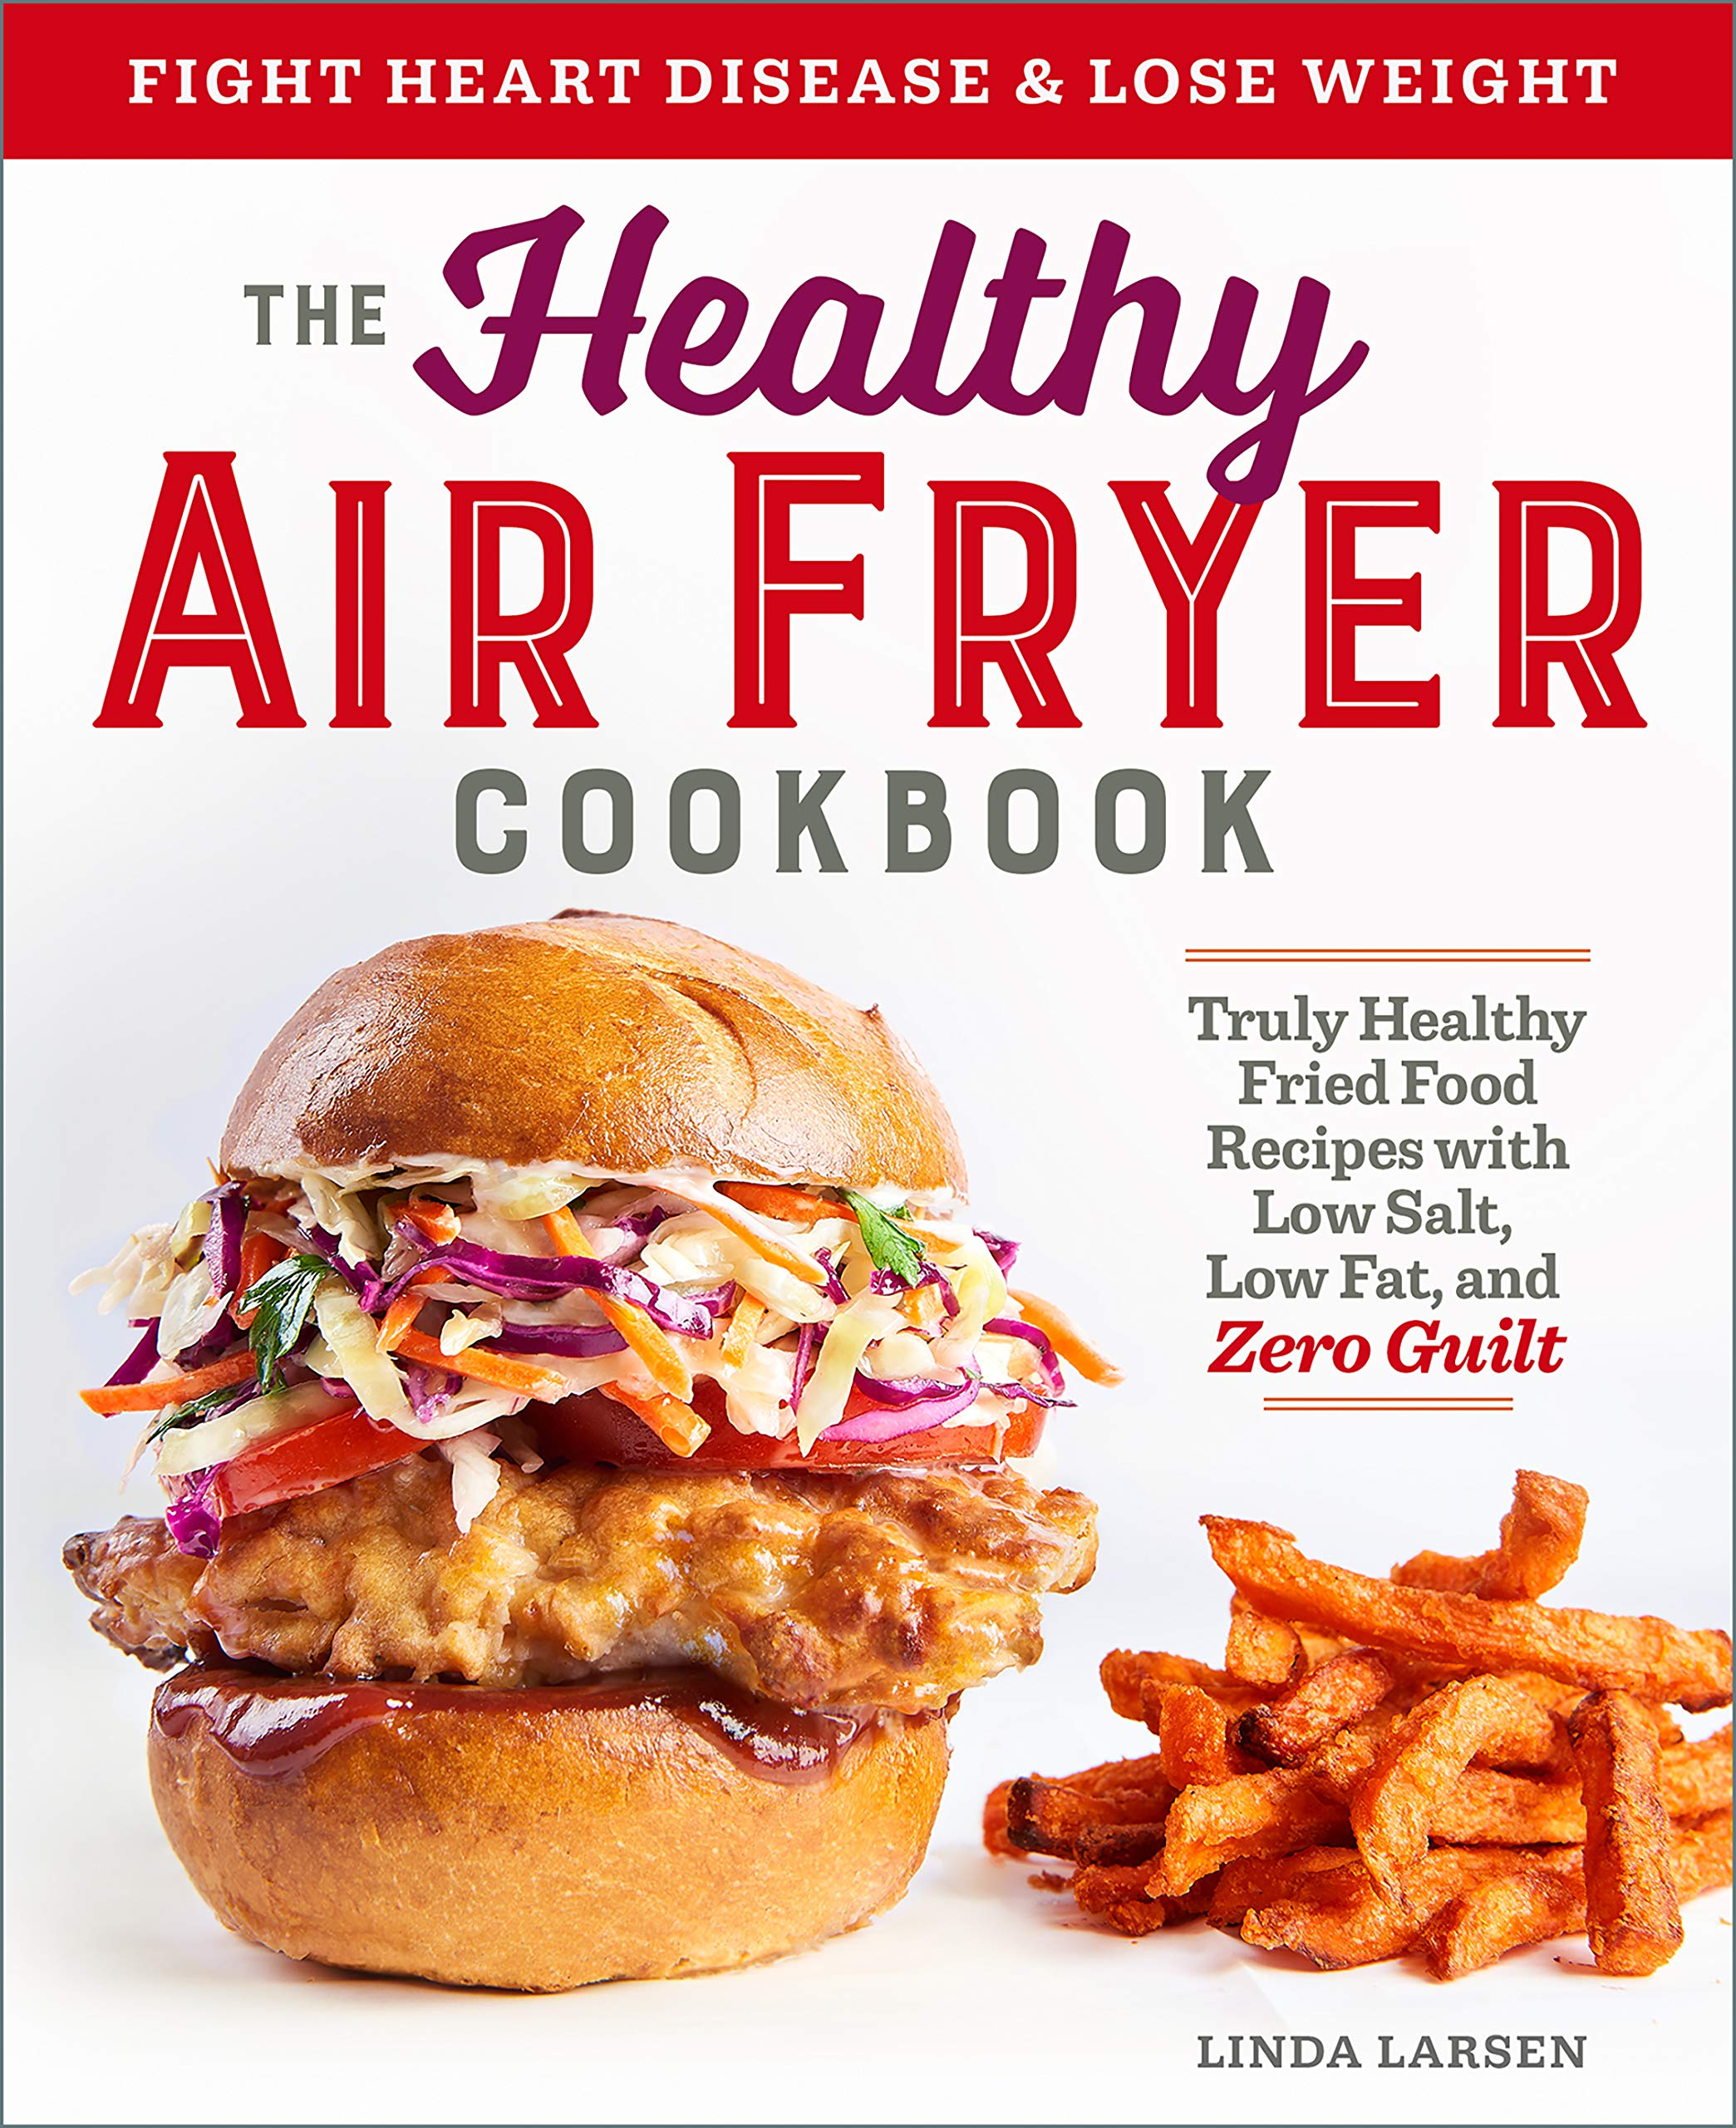 Buy The Healthy Air Fryer Cookbook: Truly Healthy Fried Food Recipes With  Low Salt, Low Fat, and Zero Guilt Book Online at Low Prices in India | The  Healthy ...